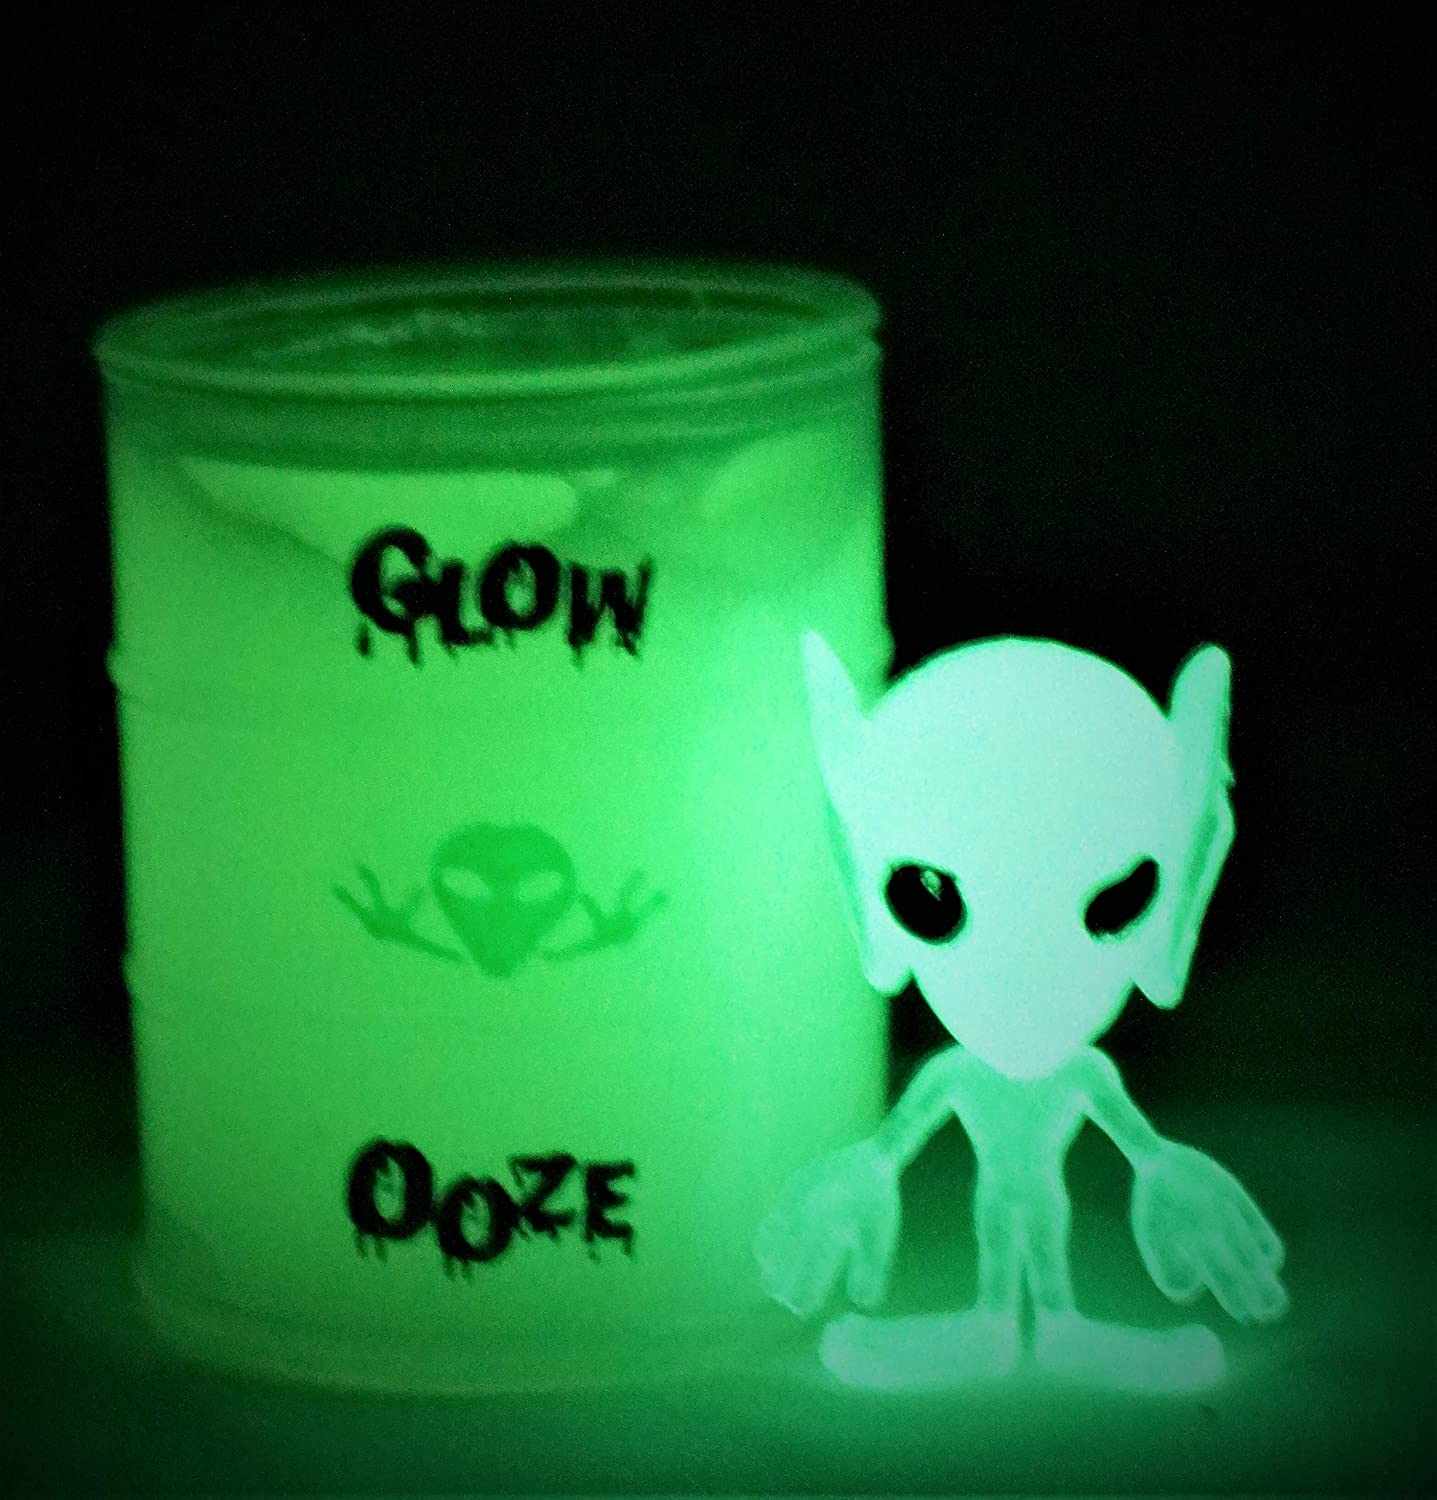 Item #5574-1p Jaru JA-RU Alien Glow in The Dark Slime and a Bouncy Ball Ooze with a Extraterrestrial Inside